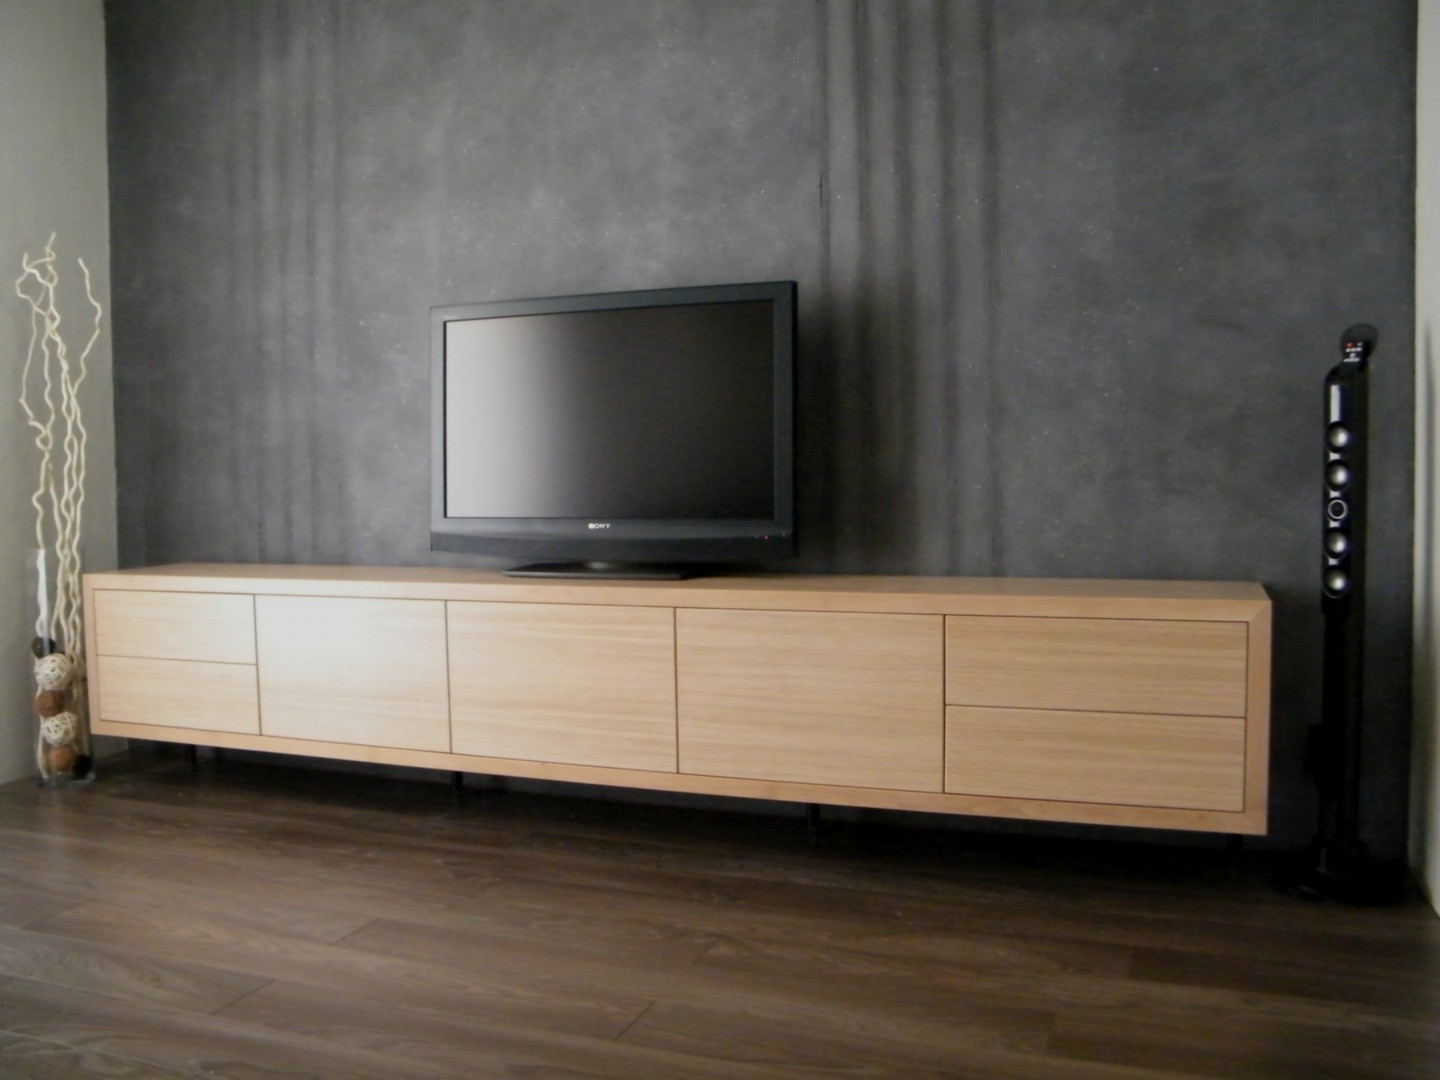 Meuble tv bas et long bois id es de d coration int rieure french decor - Meuble tv tres long ...